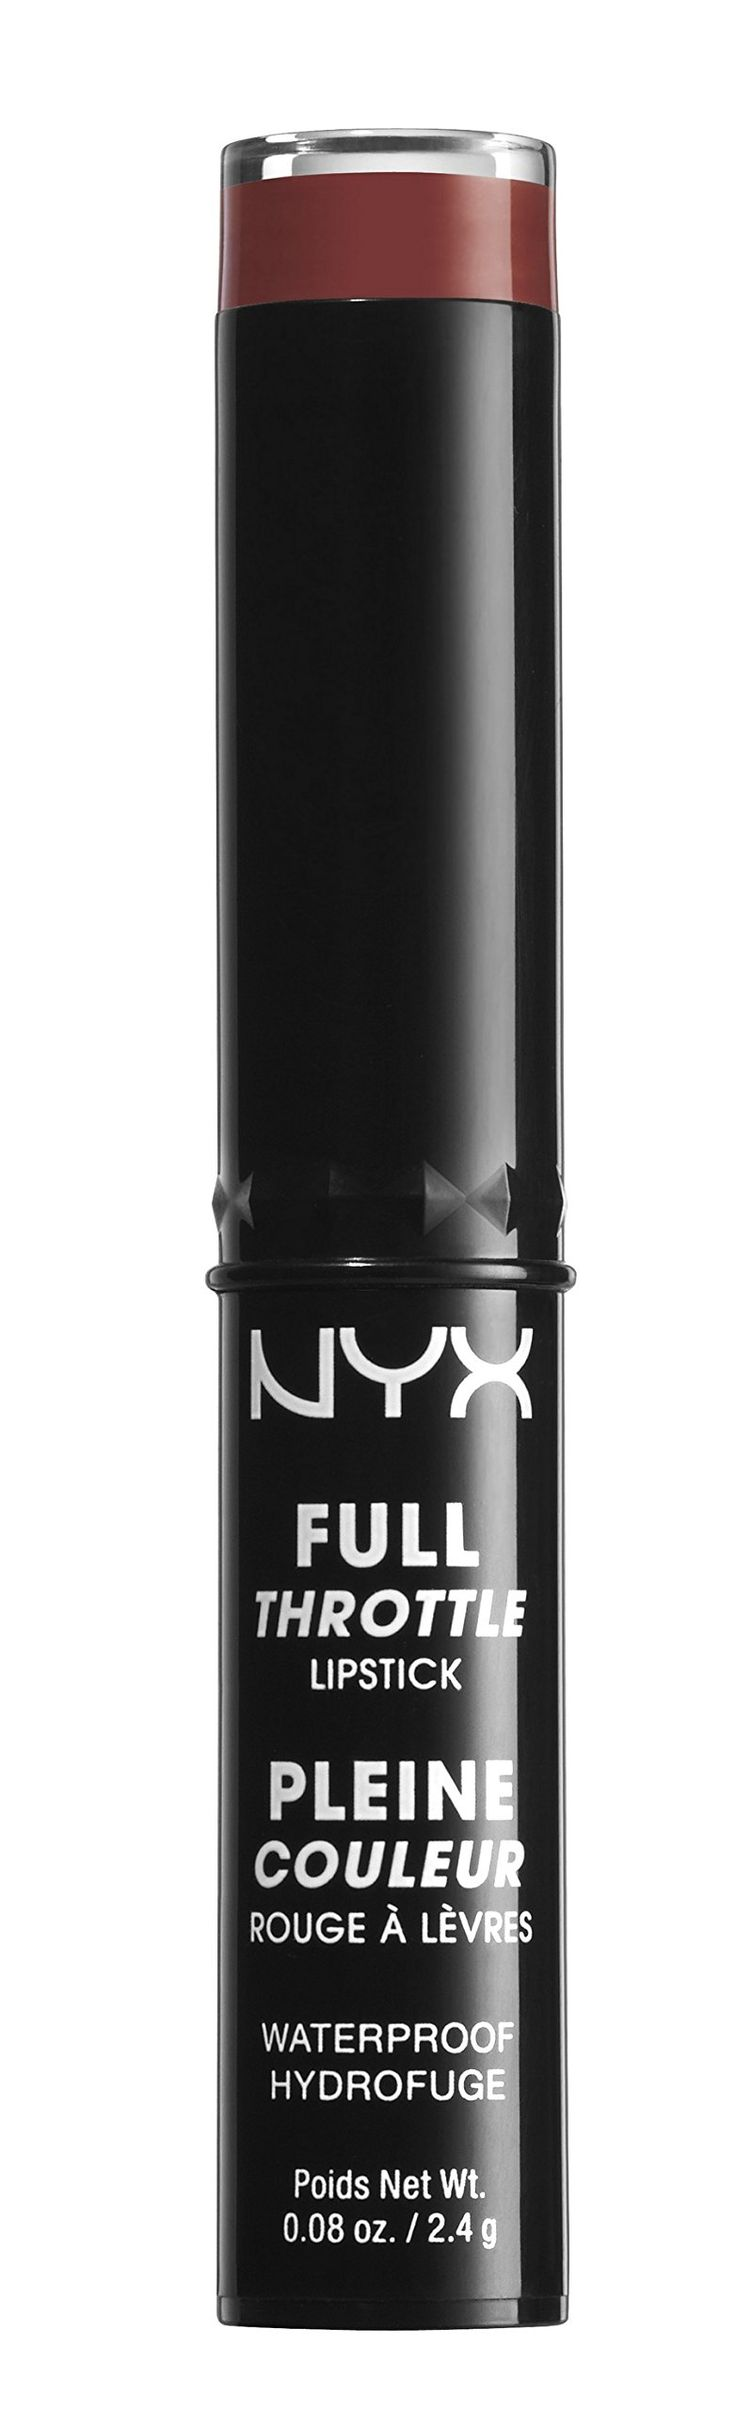 NYX Full Throttle Lipstick ~ Con Artist 01. Color: Red,Brick. Item Condition: 100% authentic, new and unused. NYX Cosmetics Full Throttle Lipstick Con Artist. NYX Cosmetics Full Throttle Lipstick Con Artist: Buy NYX Cosmetics Lipsticks - NYX Cosmetics Full Throttle Lipstick: New waterproof lipstick Super saturated matte color Features a unique buller with a beveled edge for lining, filling and perfecting your pout Details provided by NYX Cosmetics. Type: Lipstick.